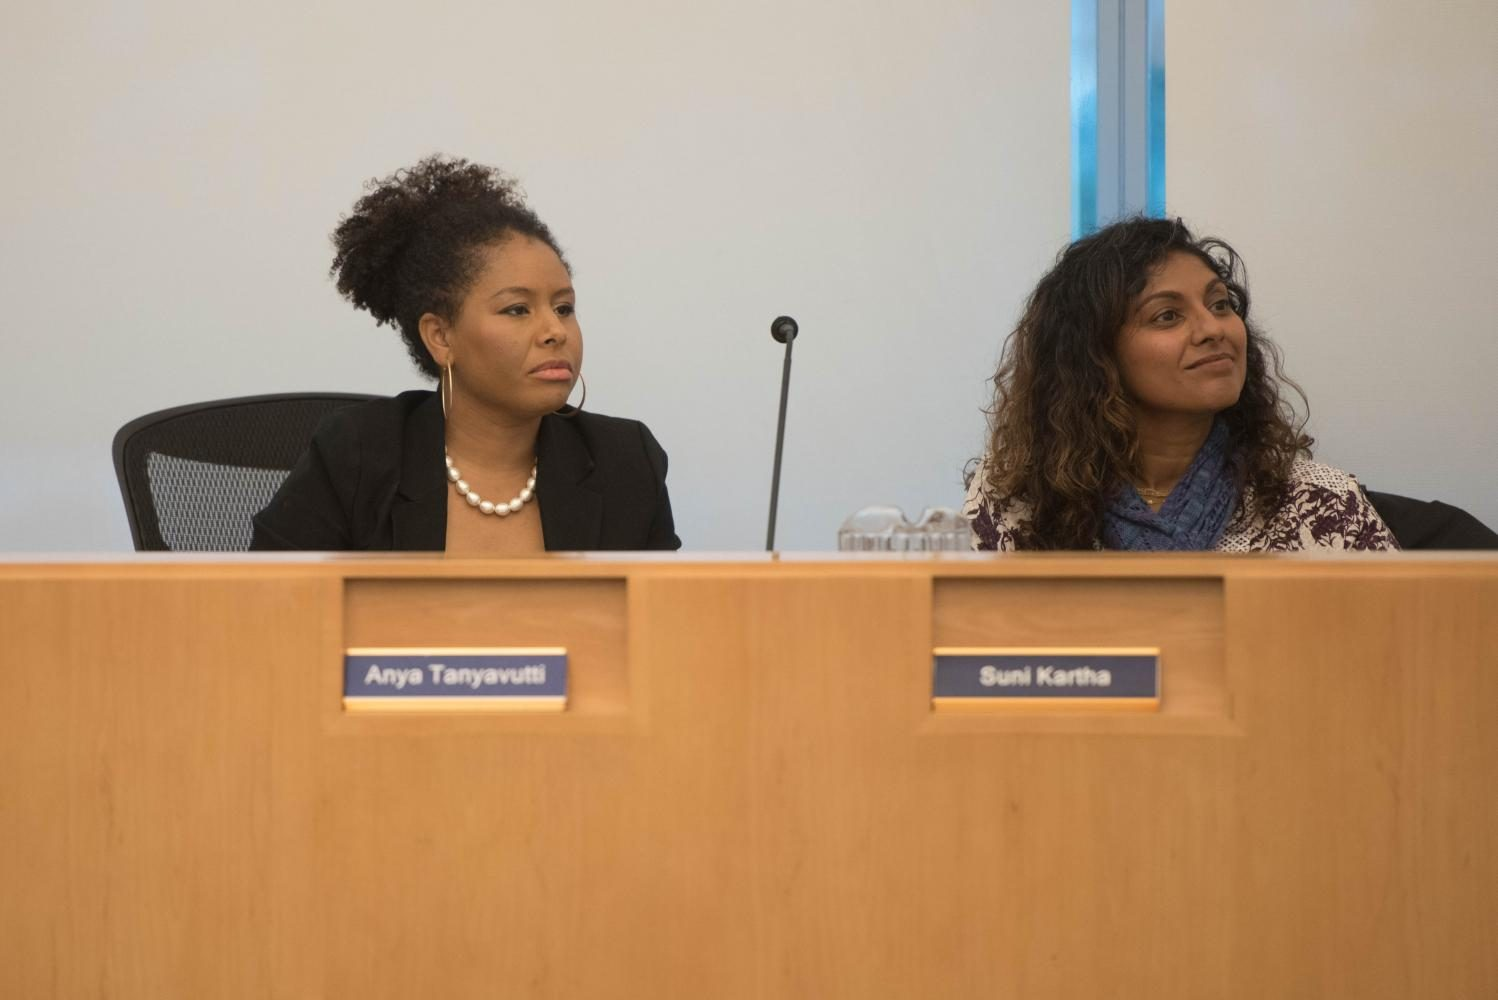 Evanston%2FSkokie+District+65+school+board+vice+president+Anya+Tanyavutti+and+president+Suni+Kartha+watch+a+speaker+at+a+board+meeting.+Tanyavutti+and+Kartha+both+voted+in+favor+of+the+algebra+consolidation+plan+Monday%2C+which+passed+5-1.